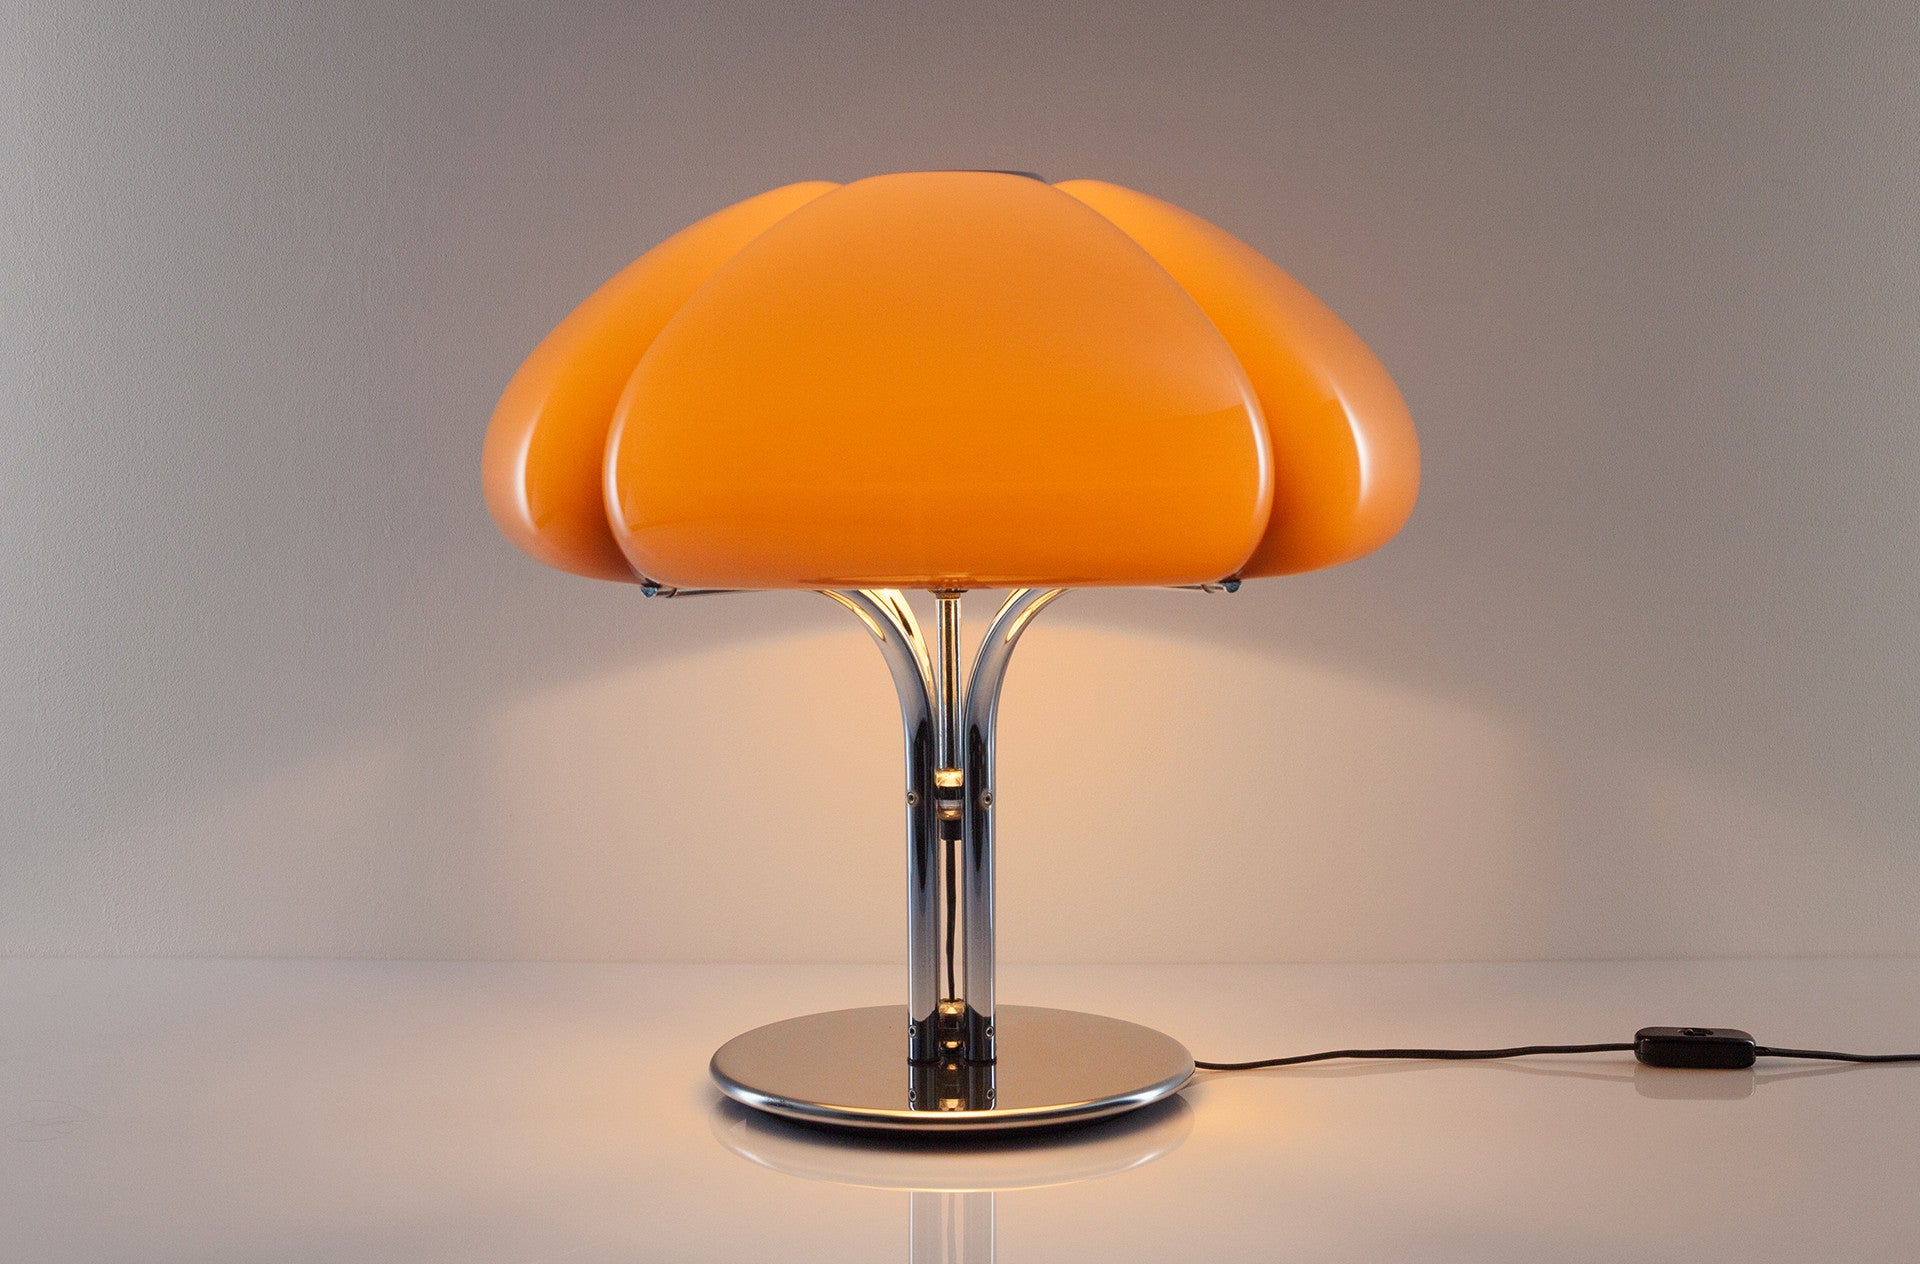 Quadrifoglio table lamp by Harvey Guzzini